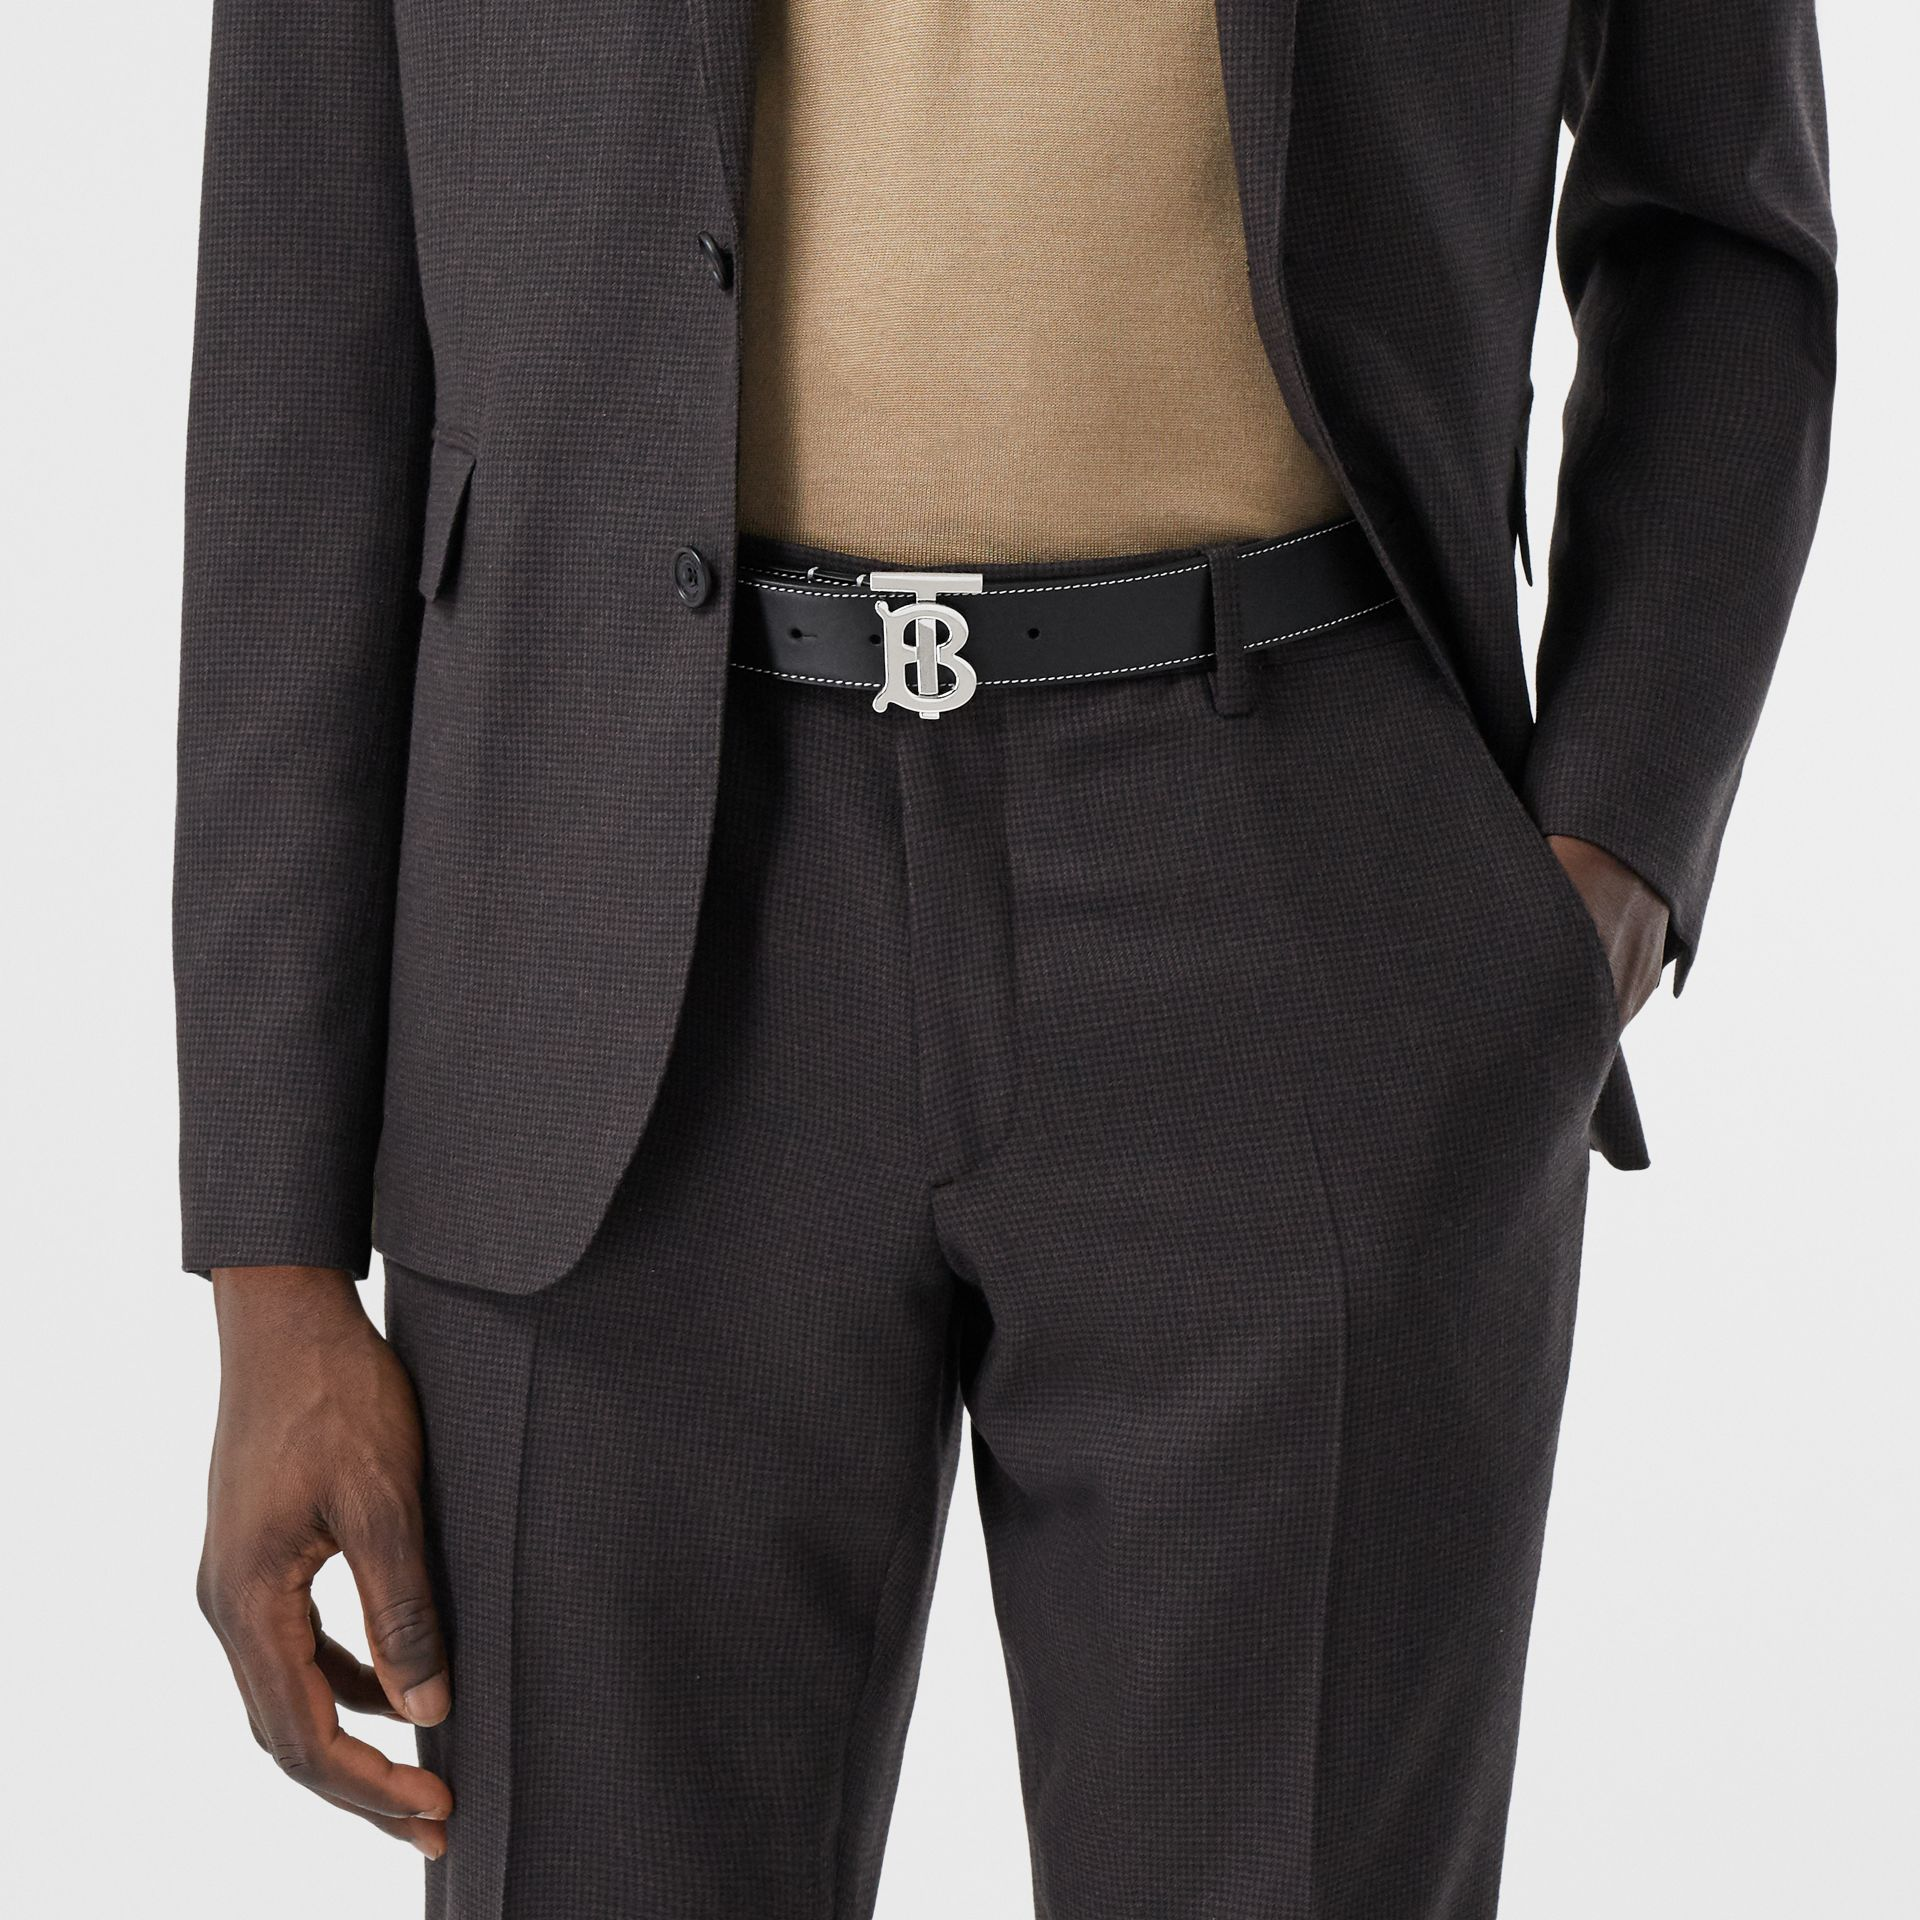 Monogram Motif Topstitched Leather Belt in Black - Men | Burberry - gallery image 2